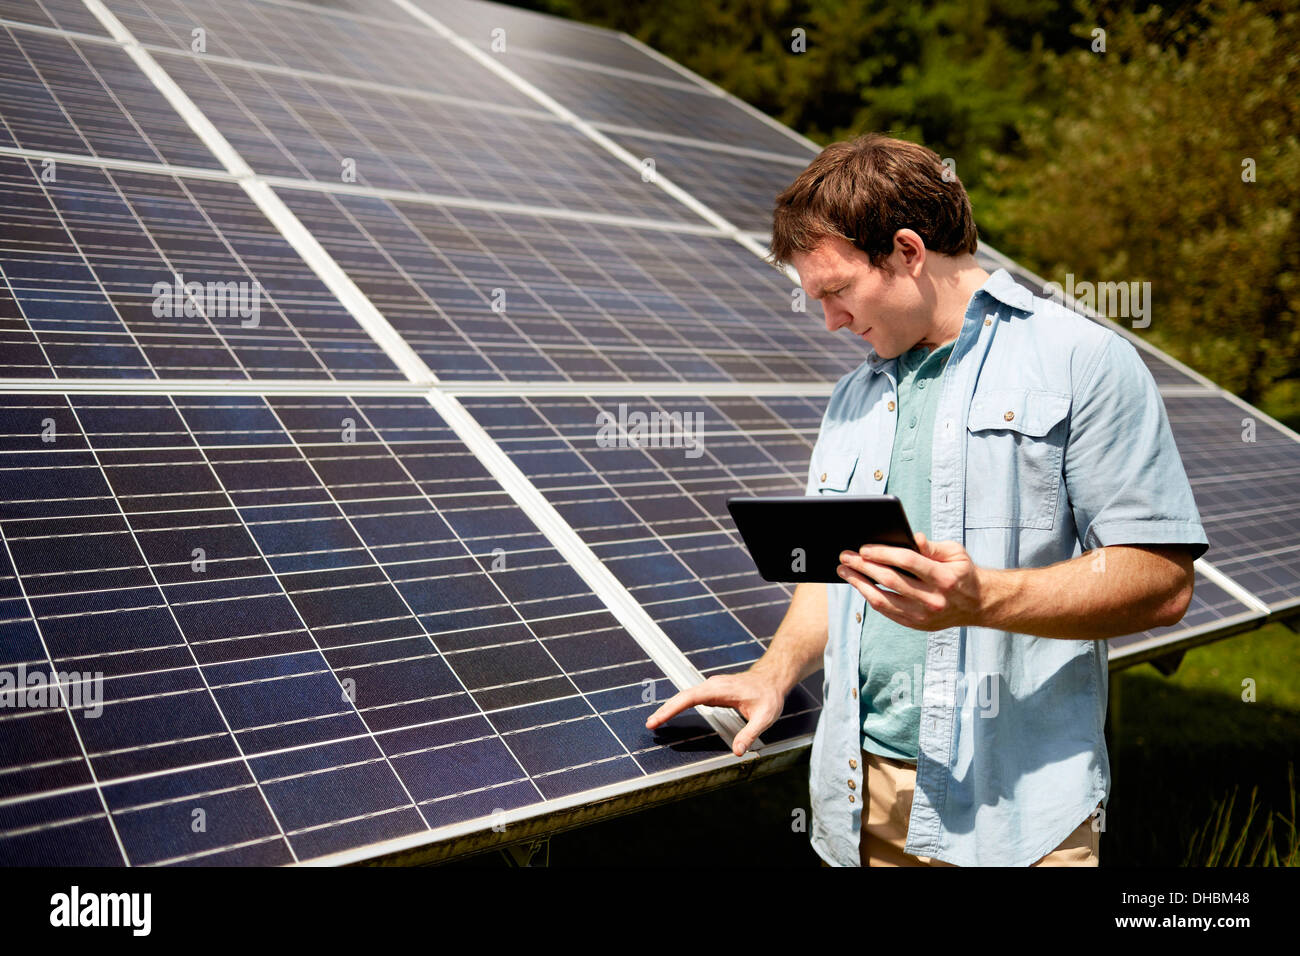 A farmer closely inspecting the surface of a solar panel on the farm. - Stock Image